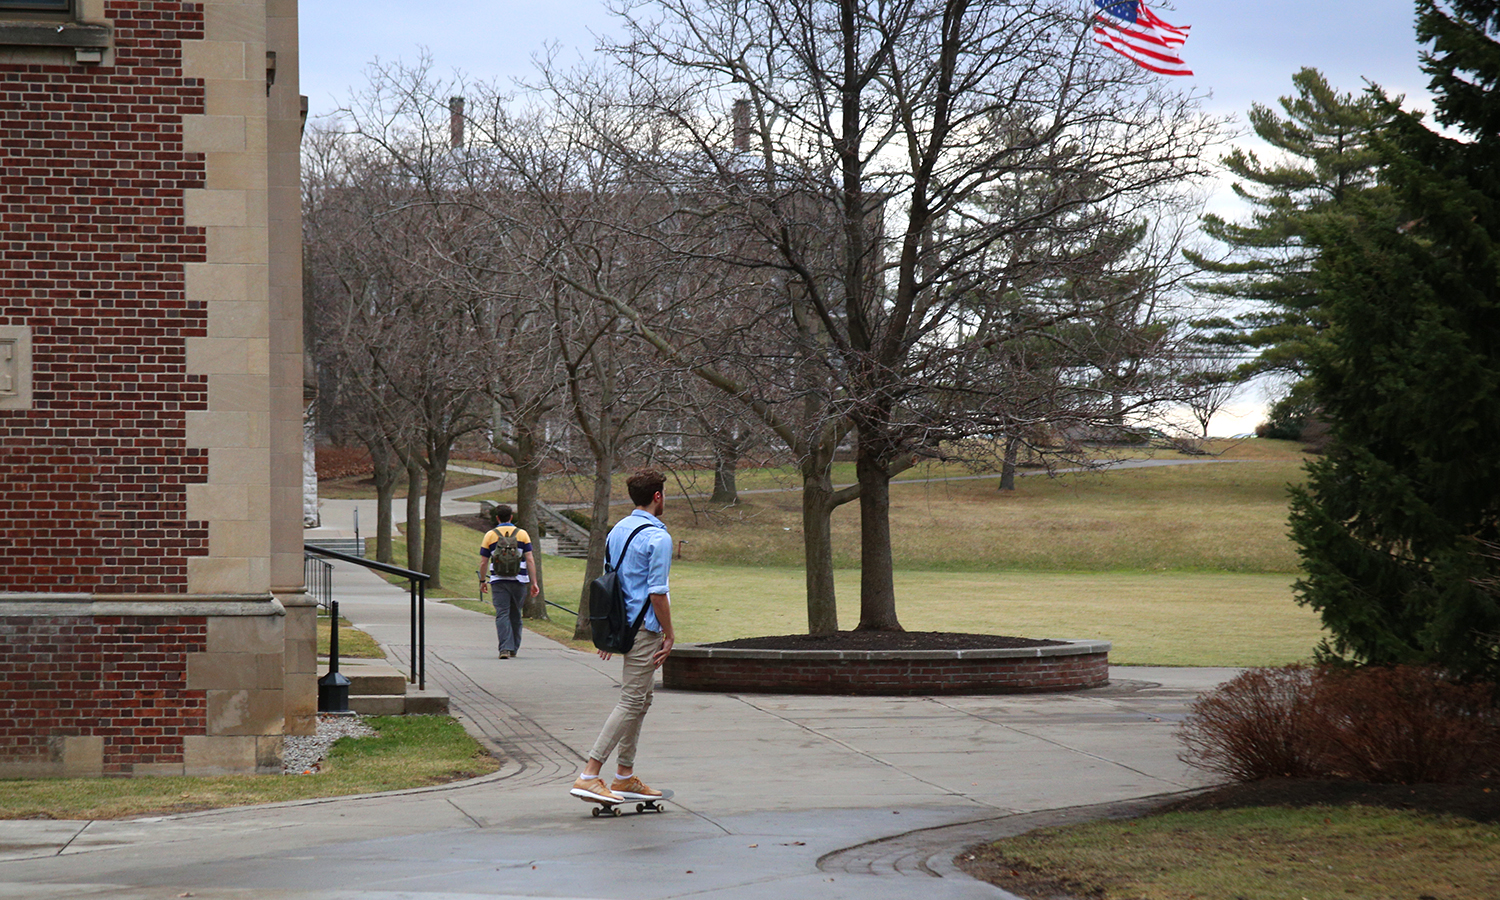 Harrison DeMaria skateboards through campus on Tuesday.